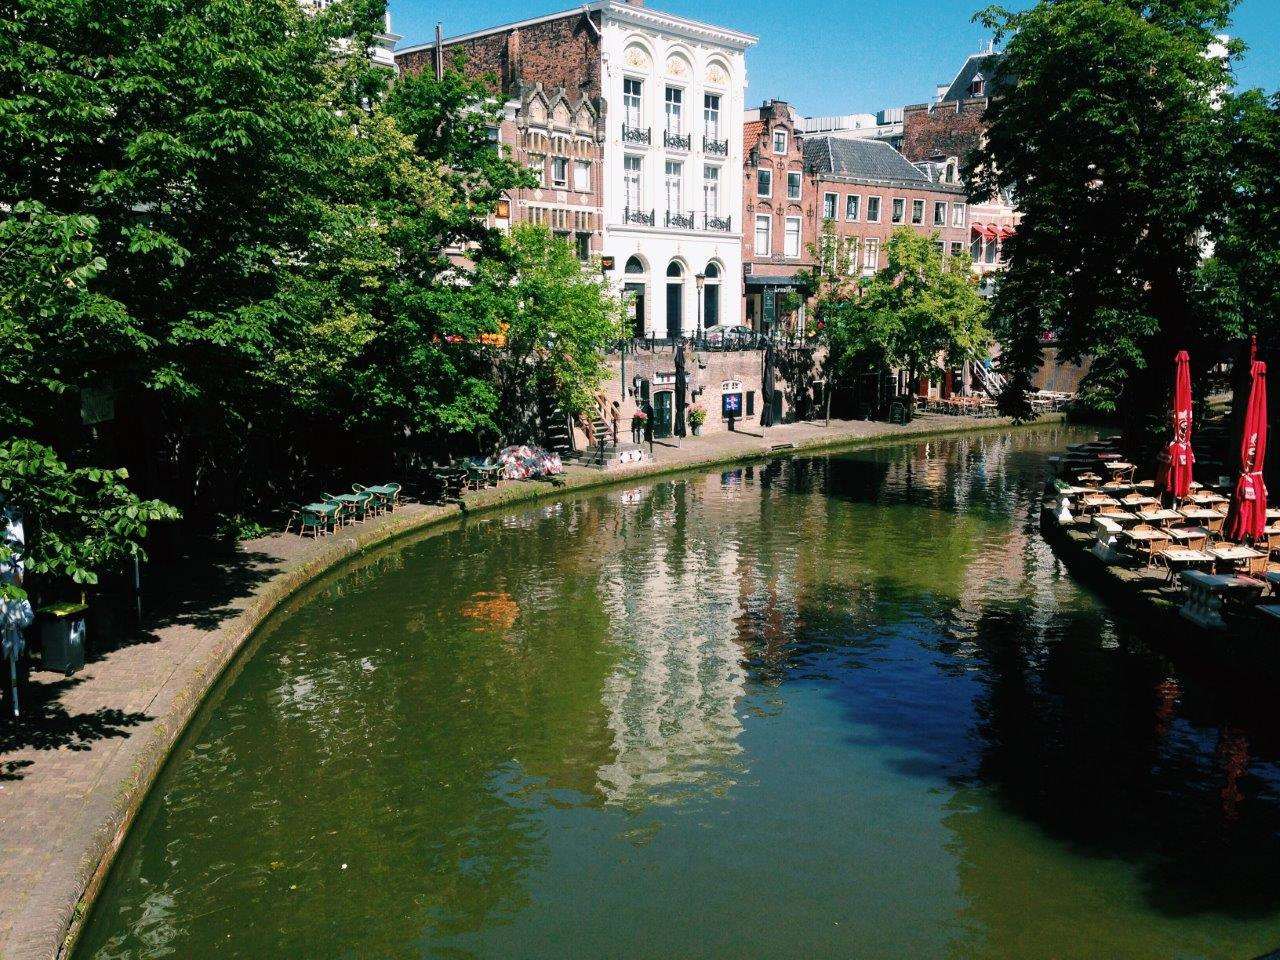 How to Spend a Day in Utrecht